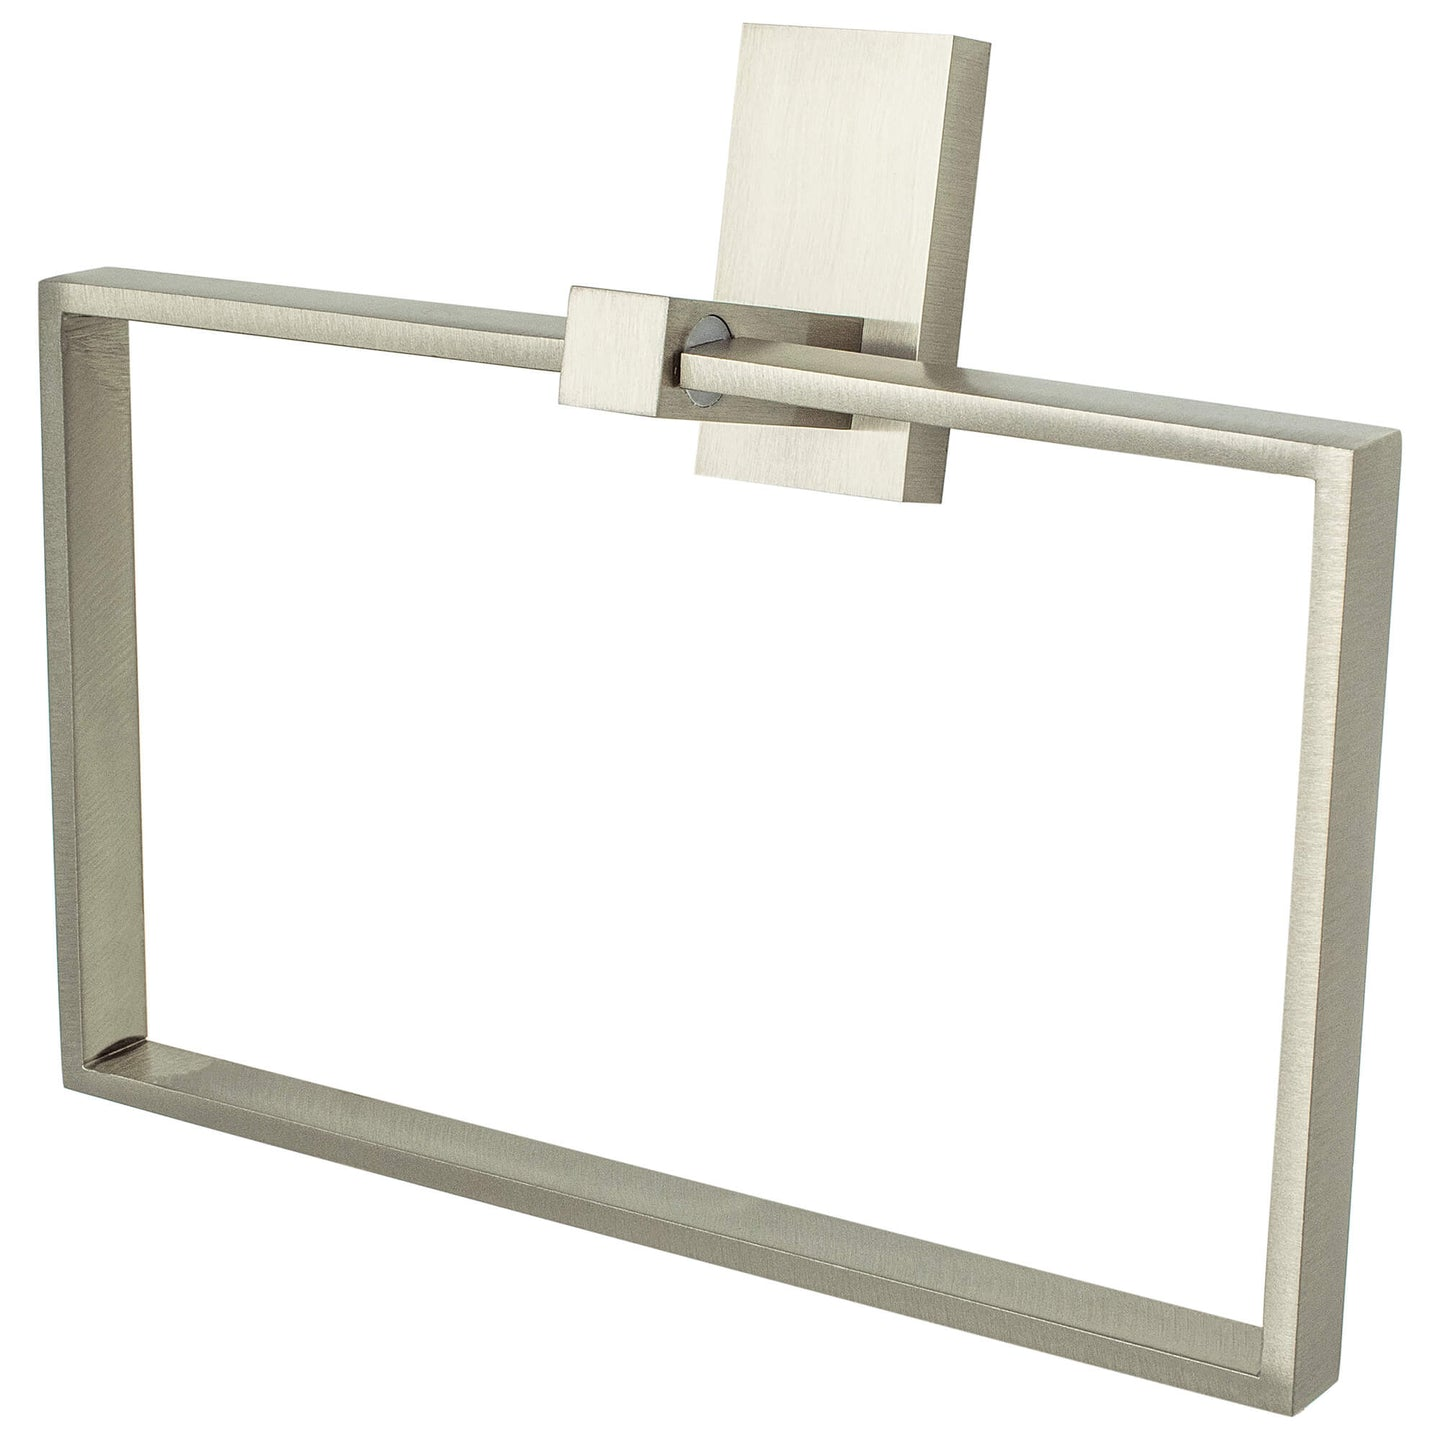 Urban Edge Towel Ring Brushed Nickel